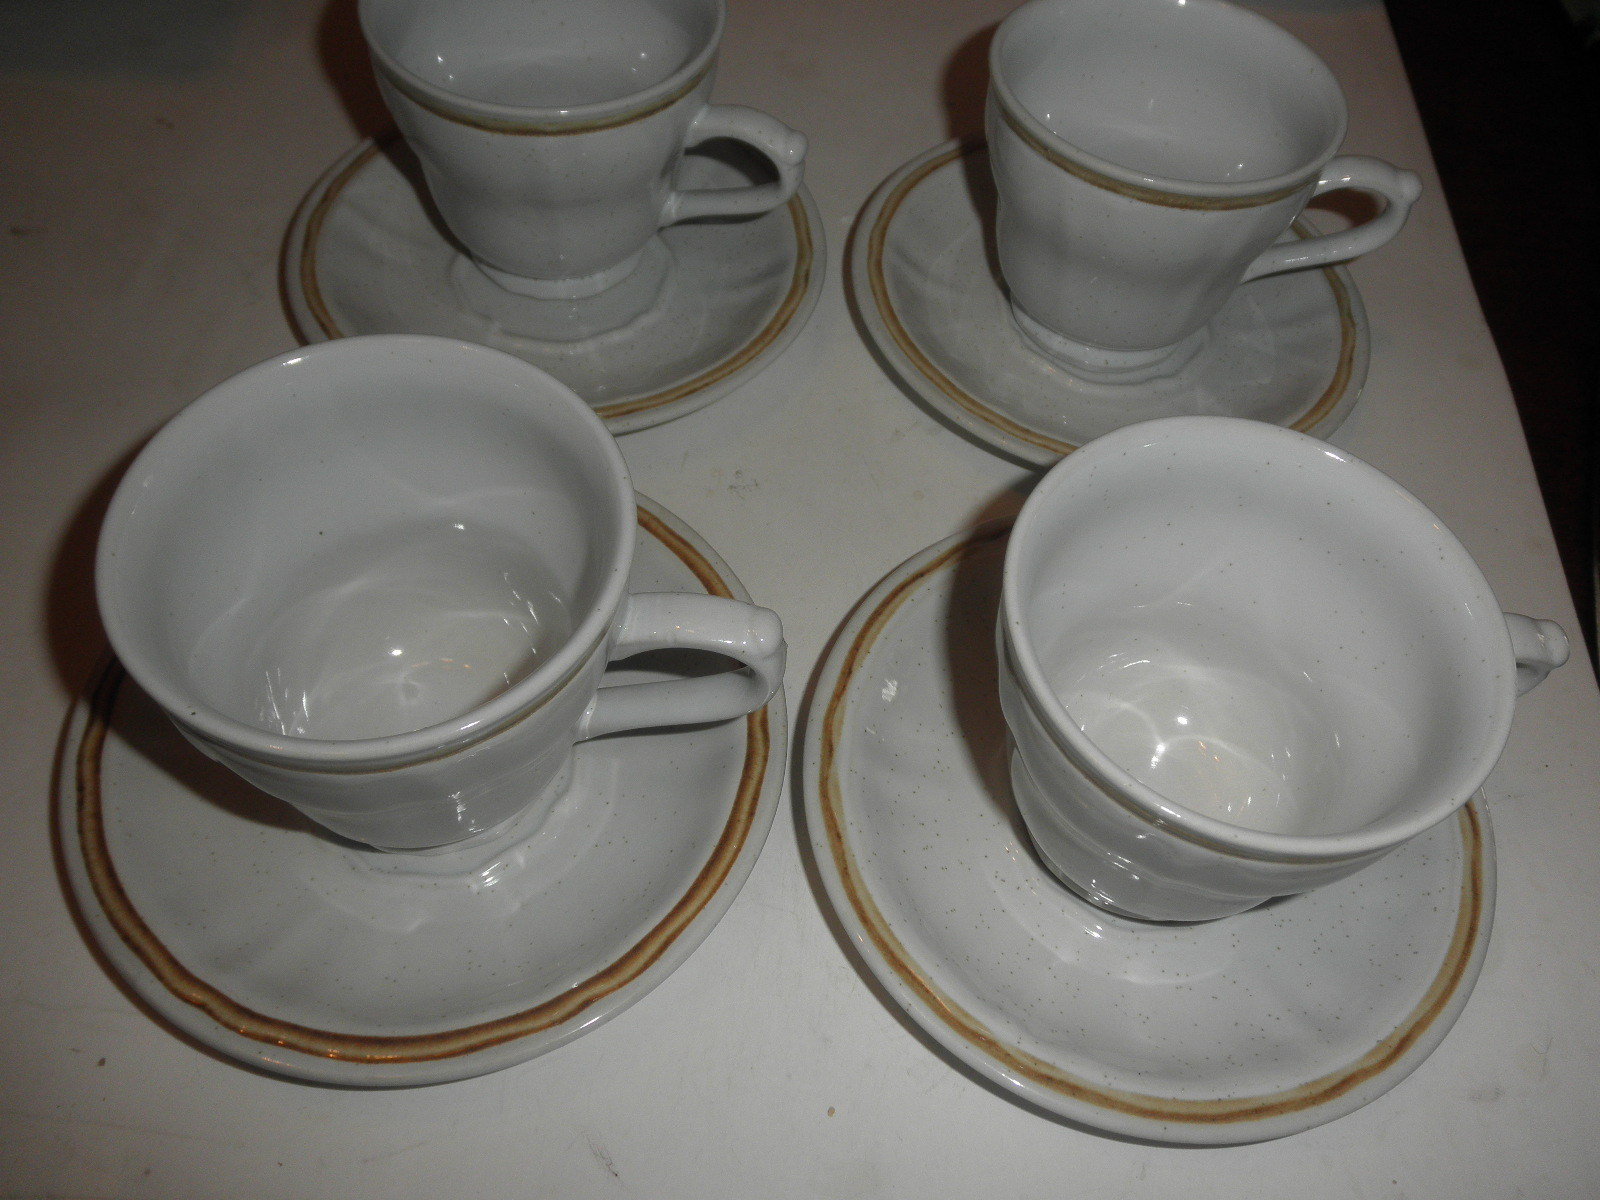 Hearthside Stoneware Cup & Saucer: 3 listings